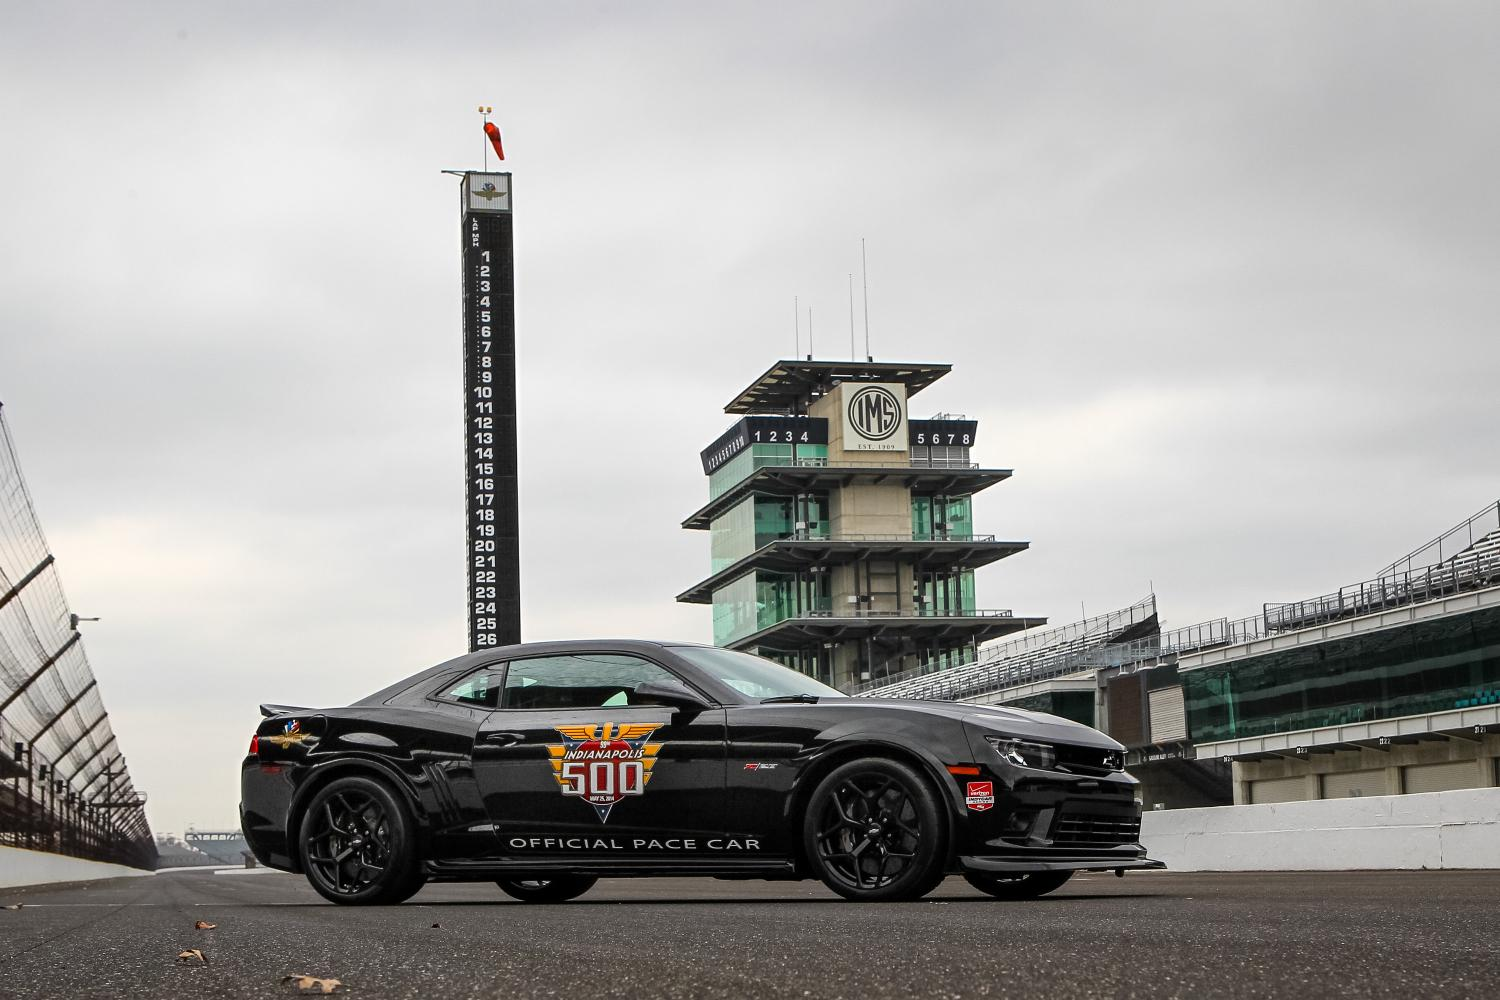 2014 Chevrolet Camaro Z 28 Indy 500 Pace Car Unveiled